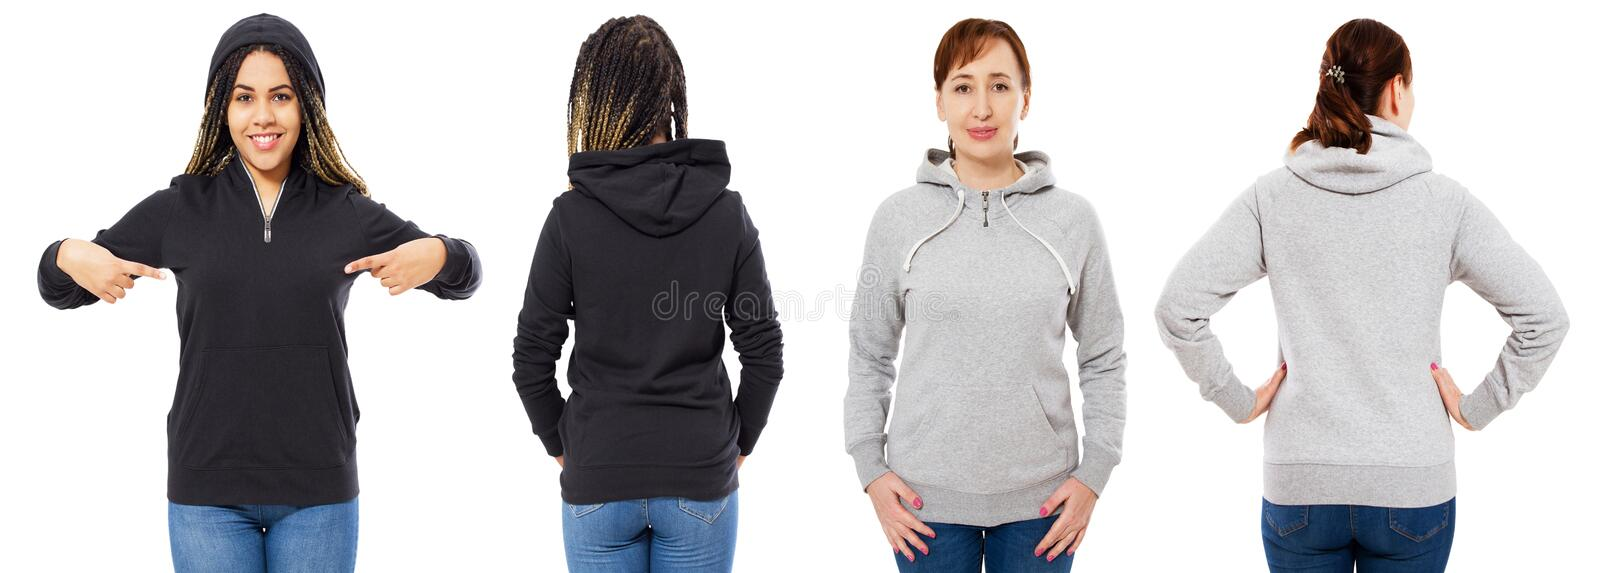 Girl in stylish black hoodie isolated on white background : girl in grey hood front and back view isolated royalty free stock image